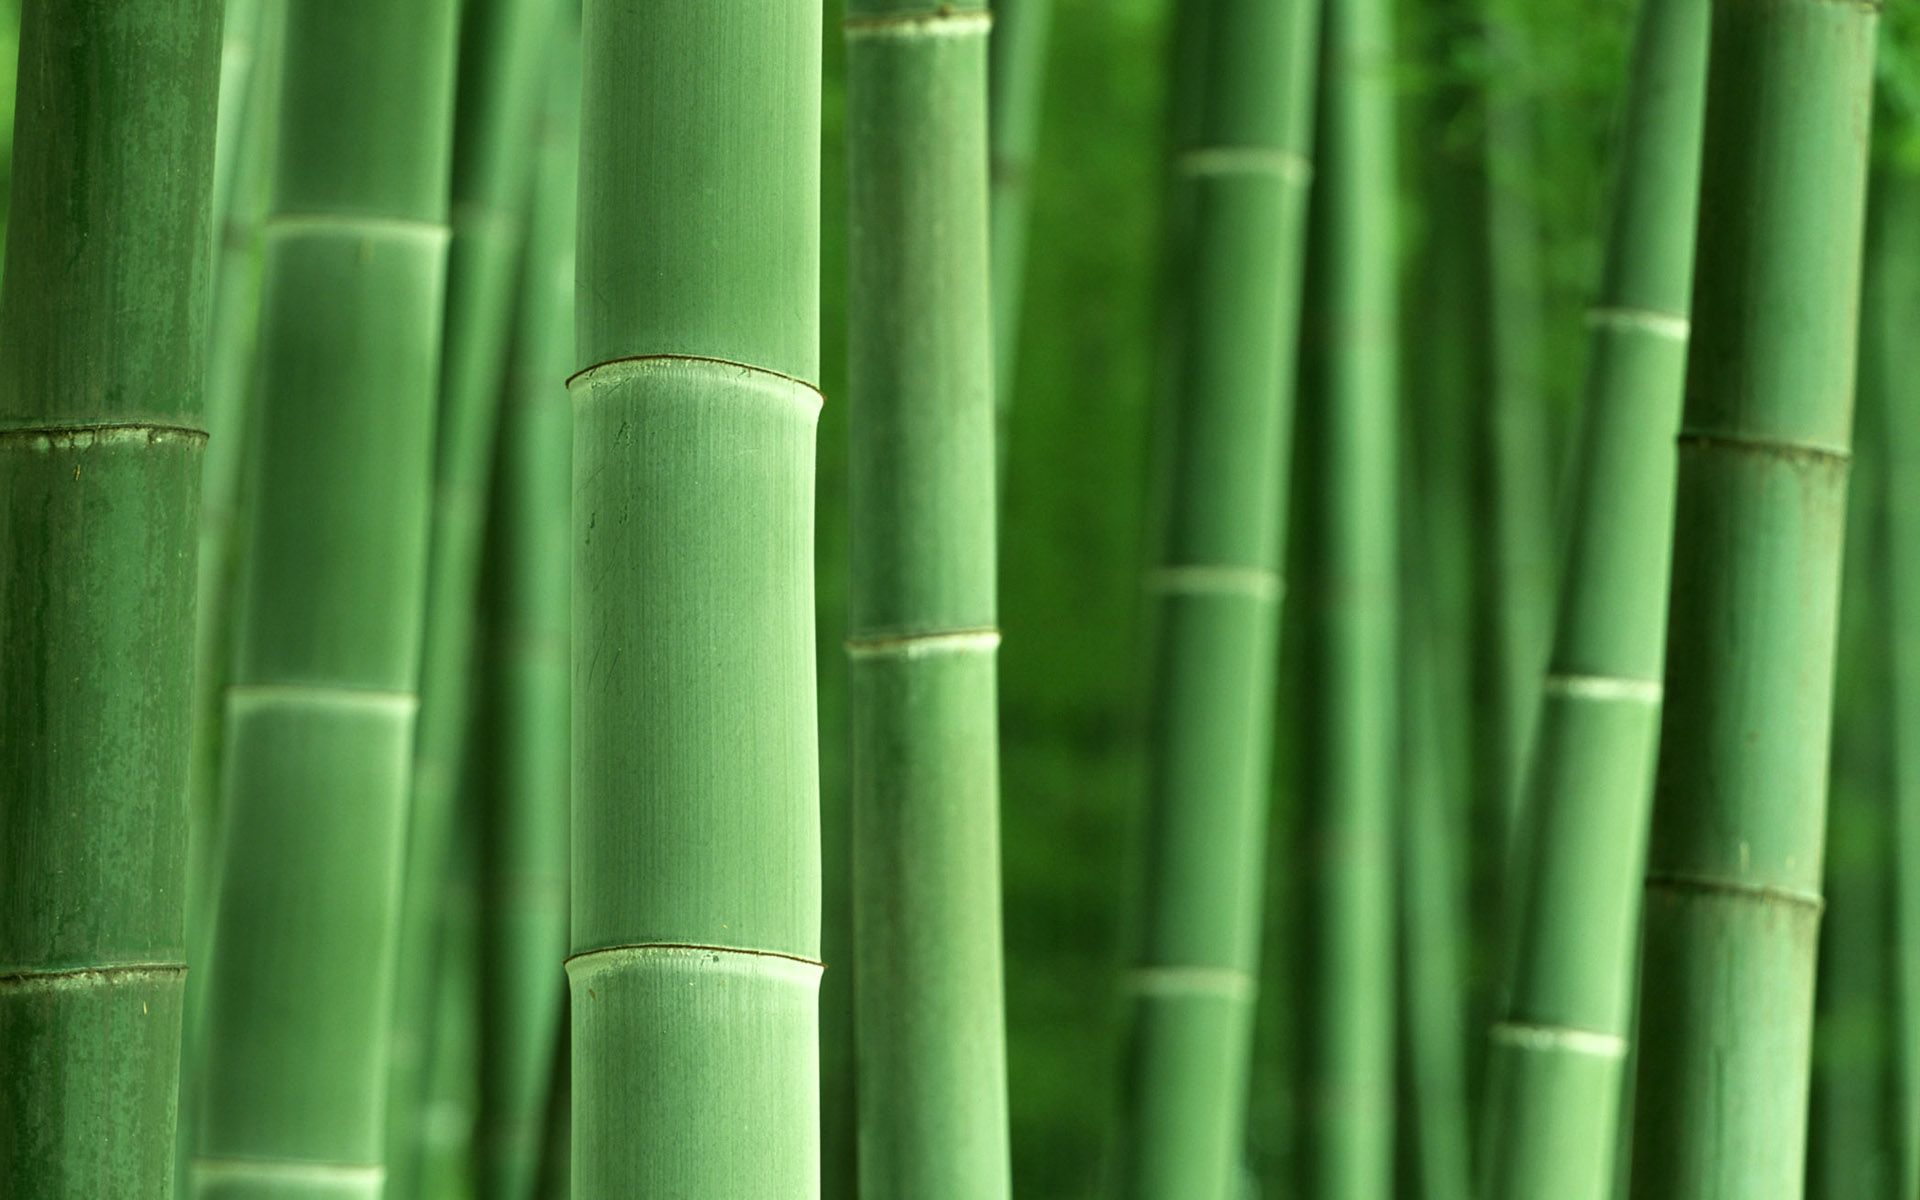 bamboo wallpapers bamboo hd images guoguiyan collection | wallpapers